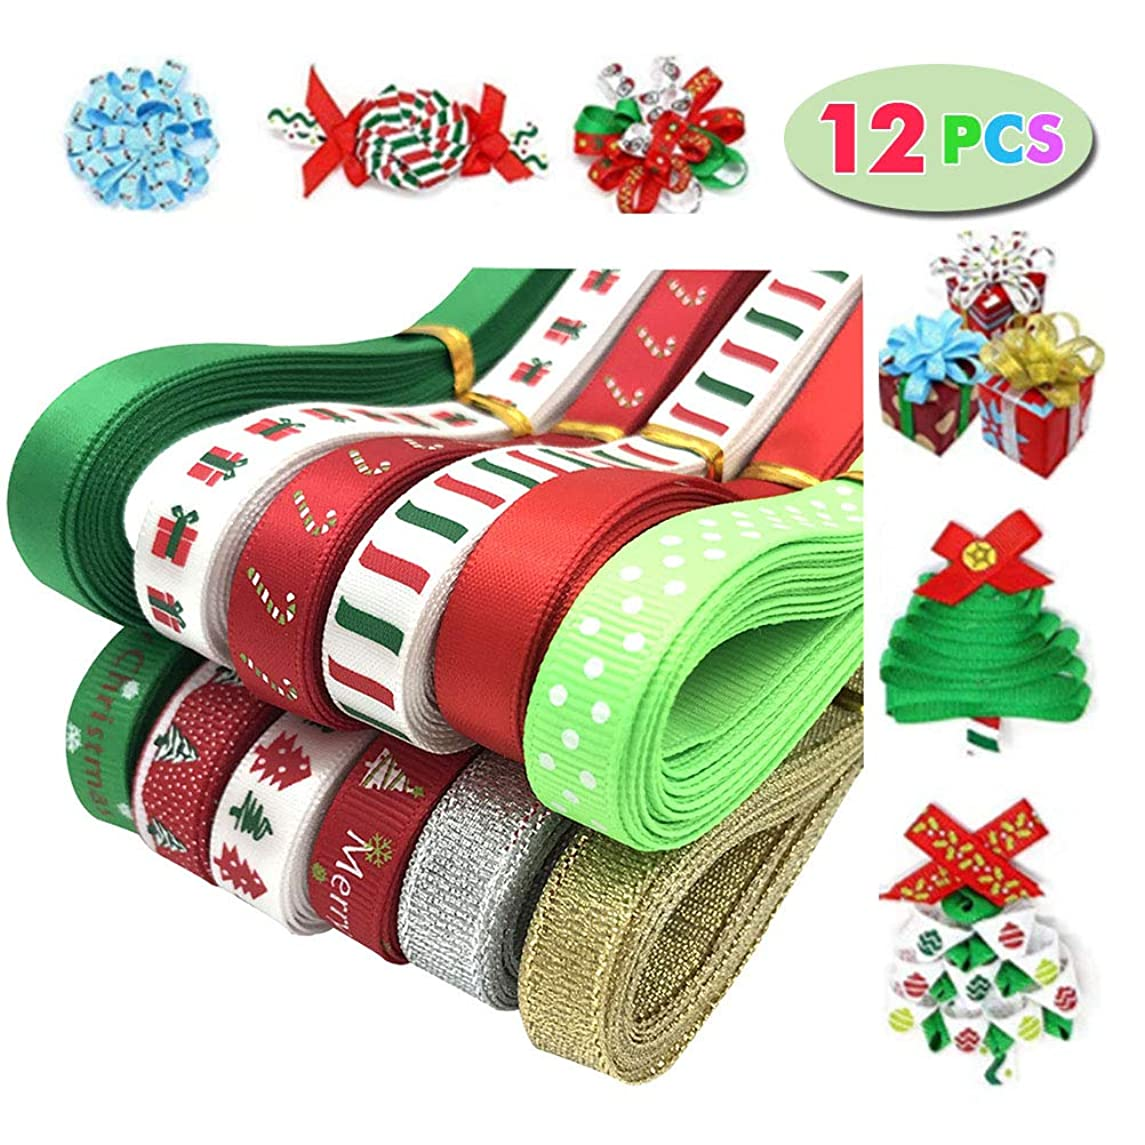 Yukoi Boutique Polka Dot Grosgrain Ribbons for Gifts Package Wrapping (Multicolored, 12PCS)